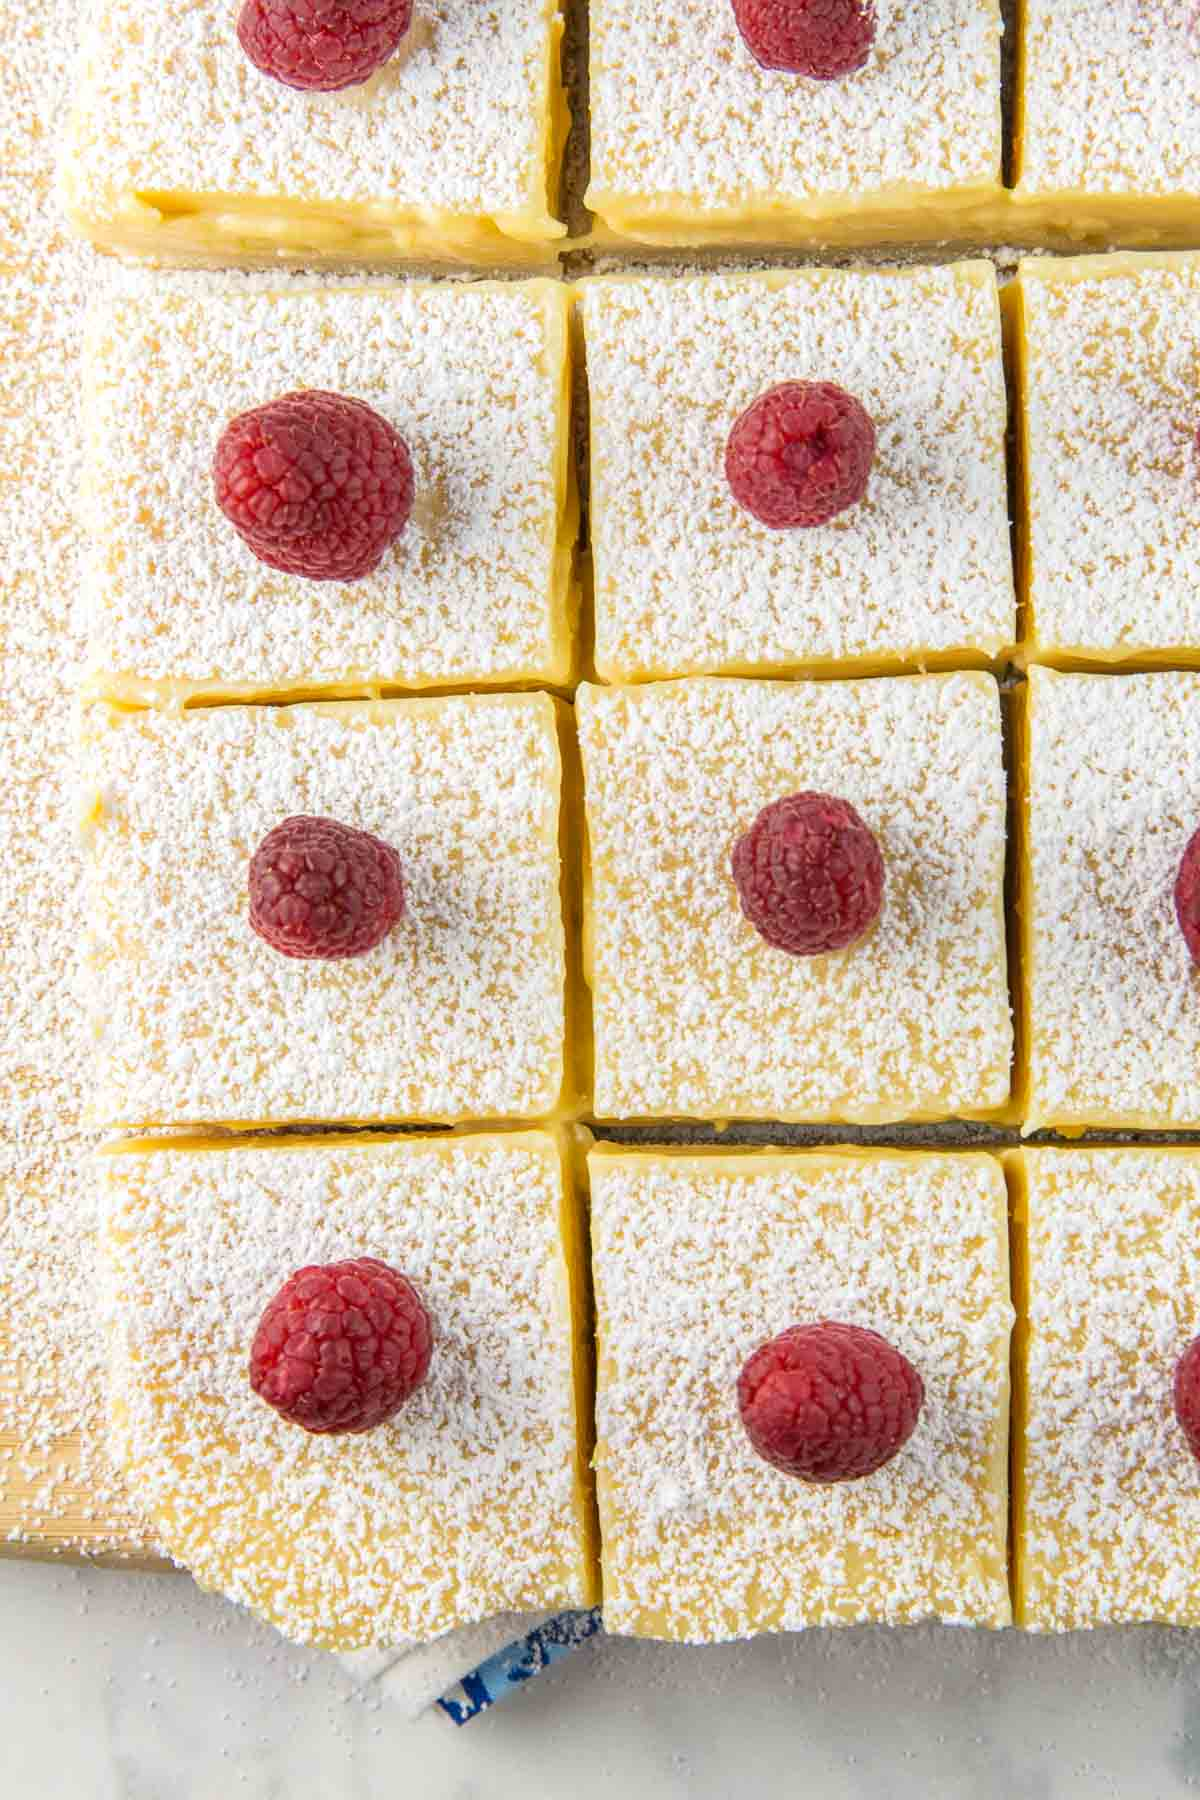 Lemon Pie Bars: goodbye, cakey lemon squares -- these lemon pie bars are made with a creamy curd-like custard, jam packed with lemon flavor, and a crisp shortbread crust. {Bunsen Burner Bakery} #lemonsquares #lemonbars #lemonpie #lemon